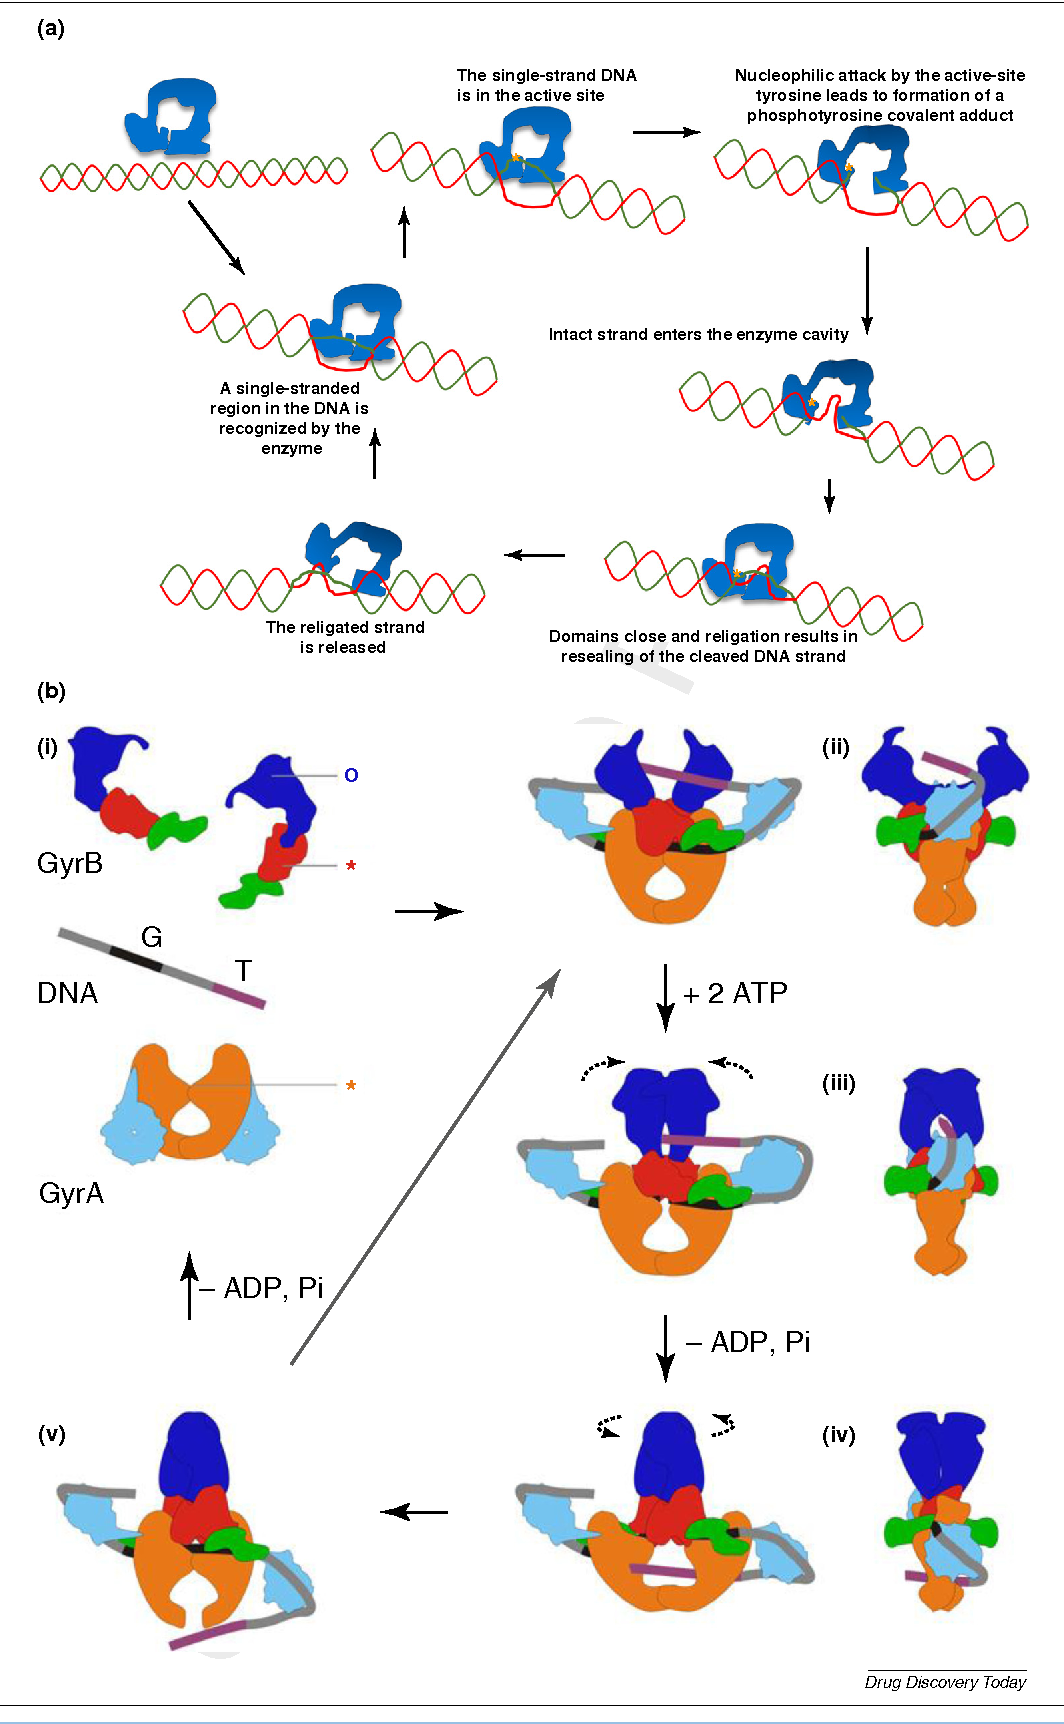 Dna Topoisomerase I And Dna Gyrase As Targets For Tb Therapy Semantic Scholar View dna gyrase research papers on academia.edu for free. dna topoisomerase i and dna gyrase as